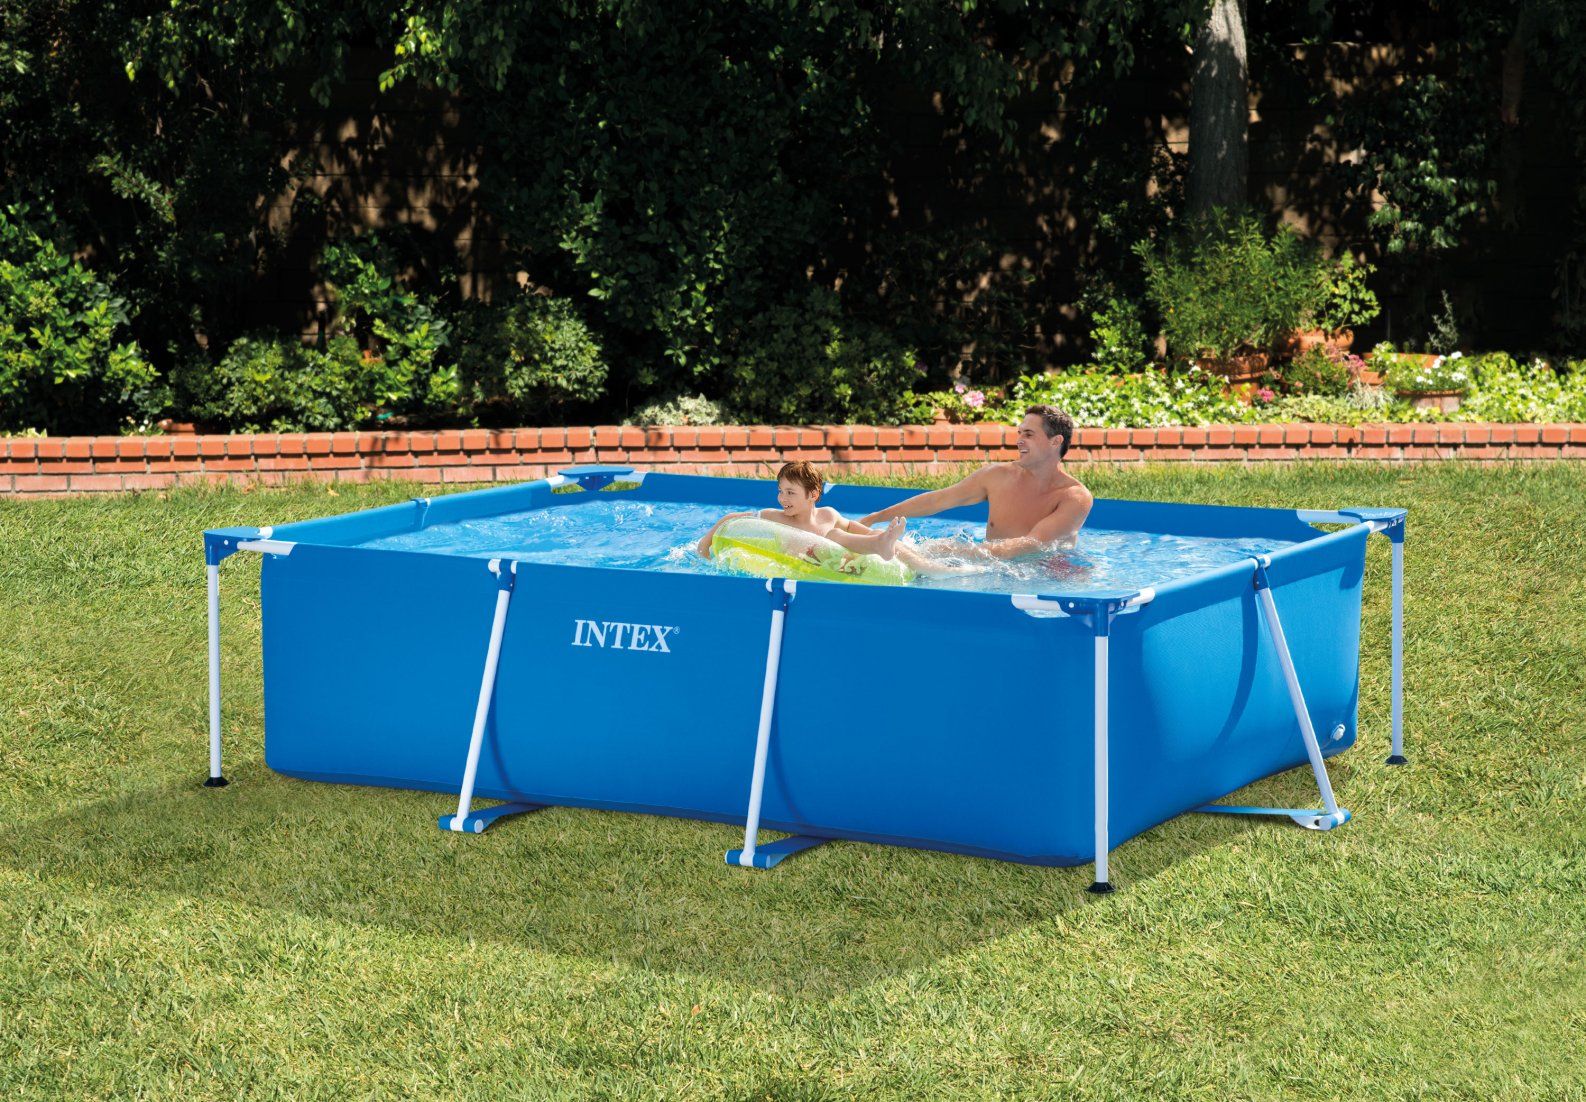 Limpiafondos Para Piscinas Desmontables Intex Piscina Estructural Rectangular Intex 28272 3x2x0 75m